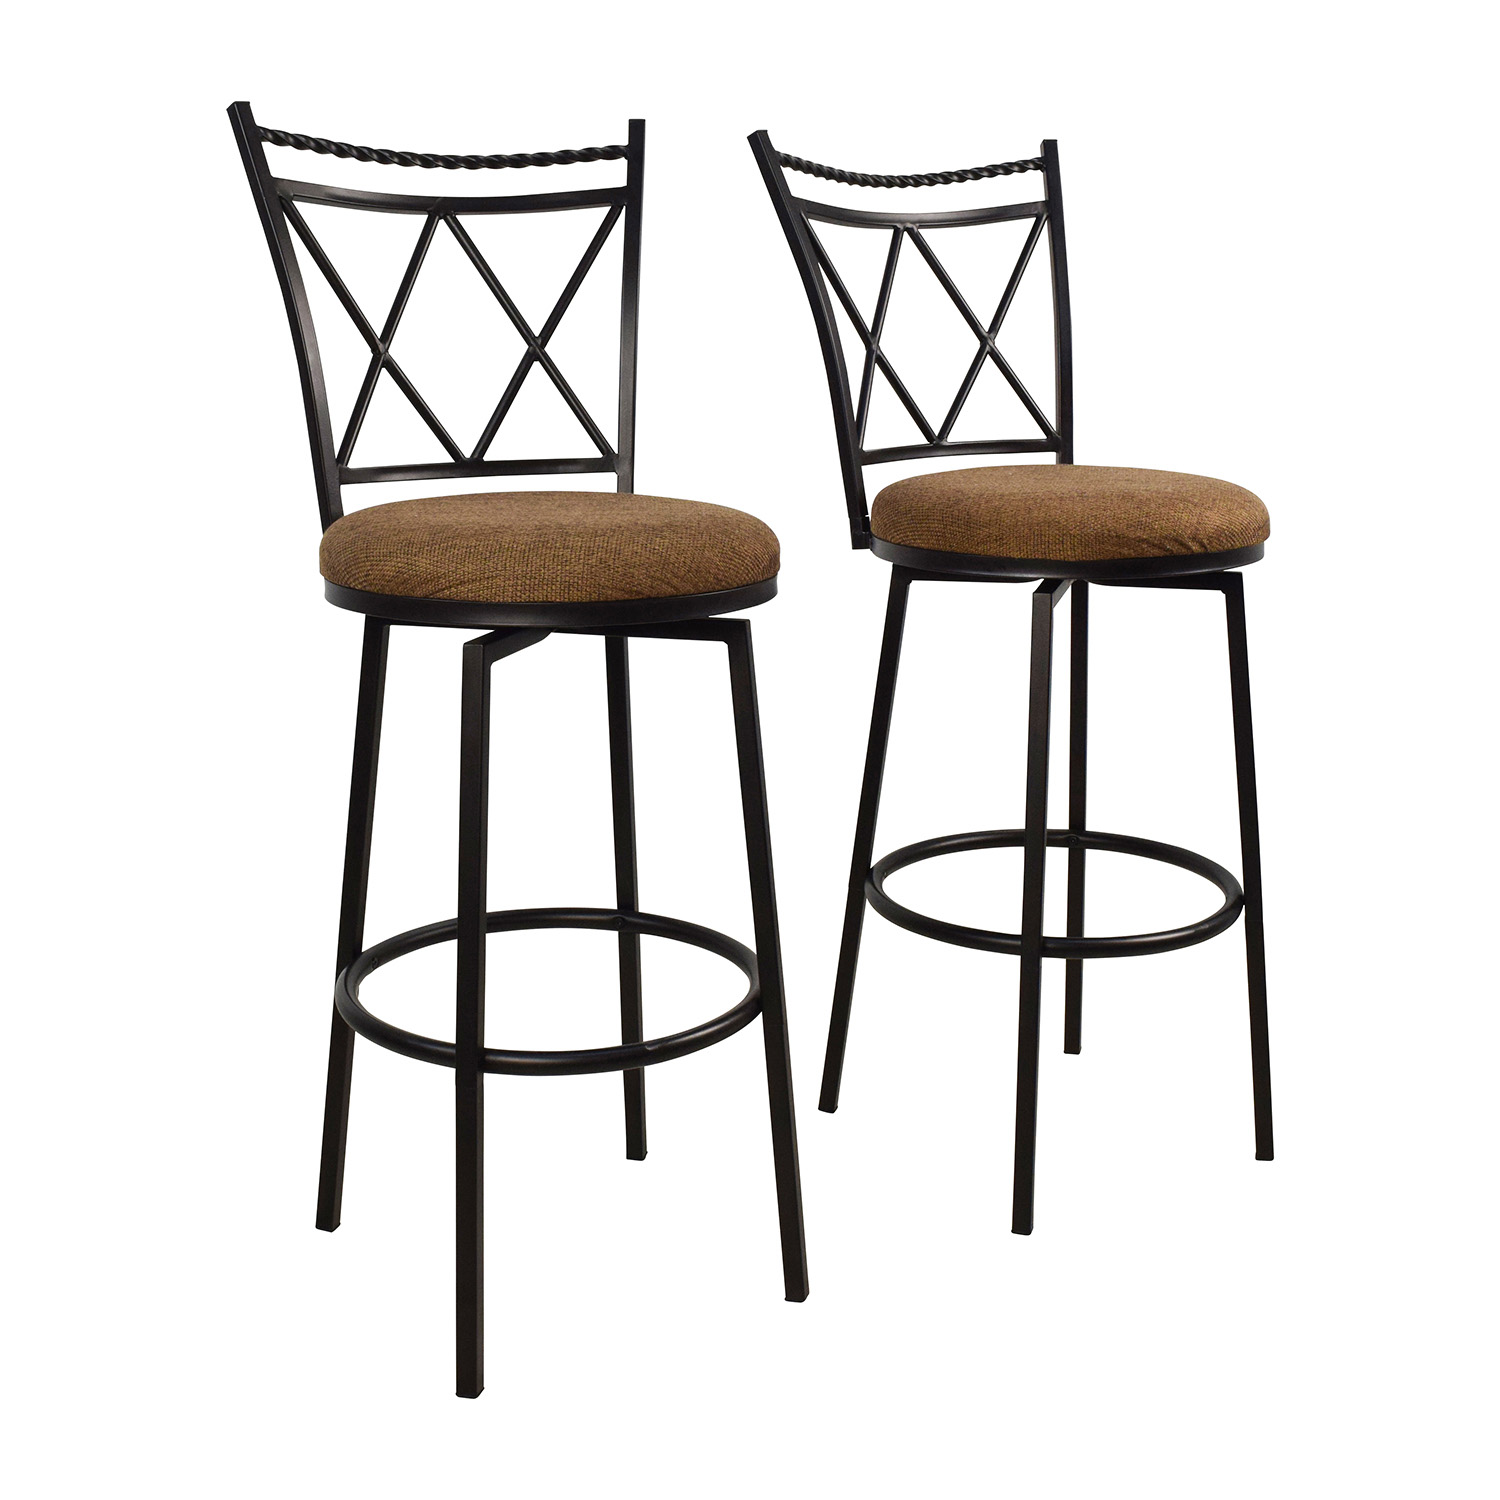 Upholstered Bar Chairs 65 Off Upholstered Swivel Bar Stools Chairs